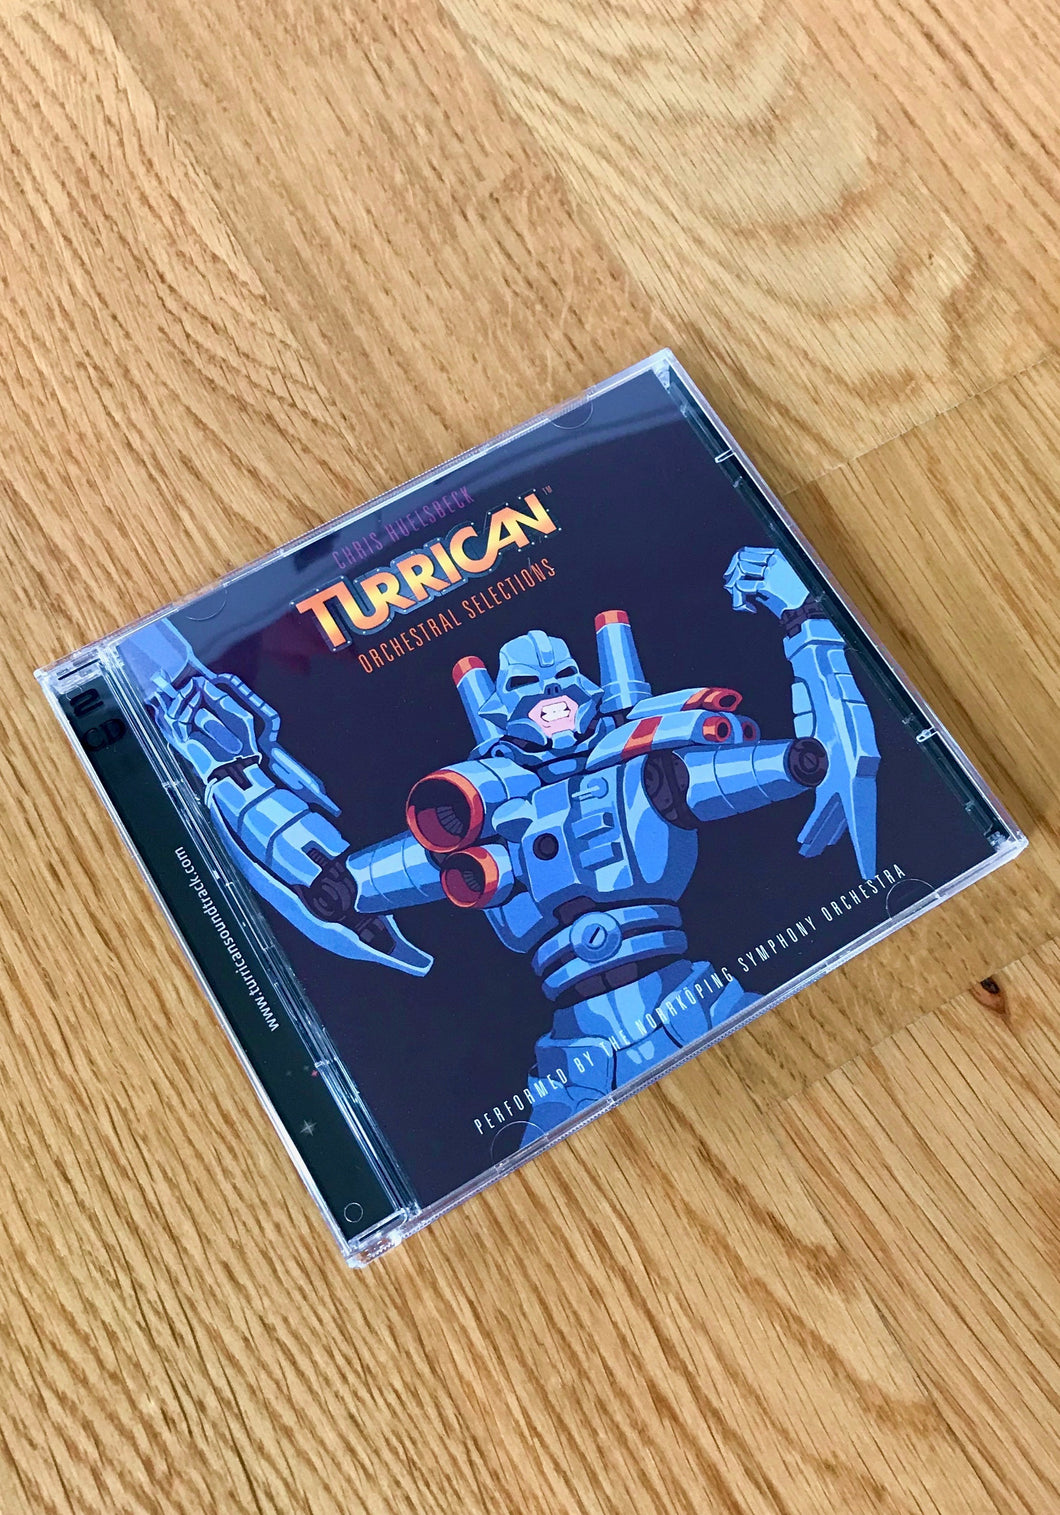 Turrican - Orchestral Selections & Rise Of The Machine (Limited Edition Double CD)